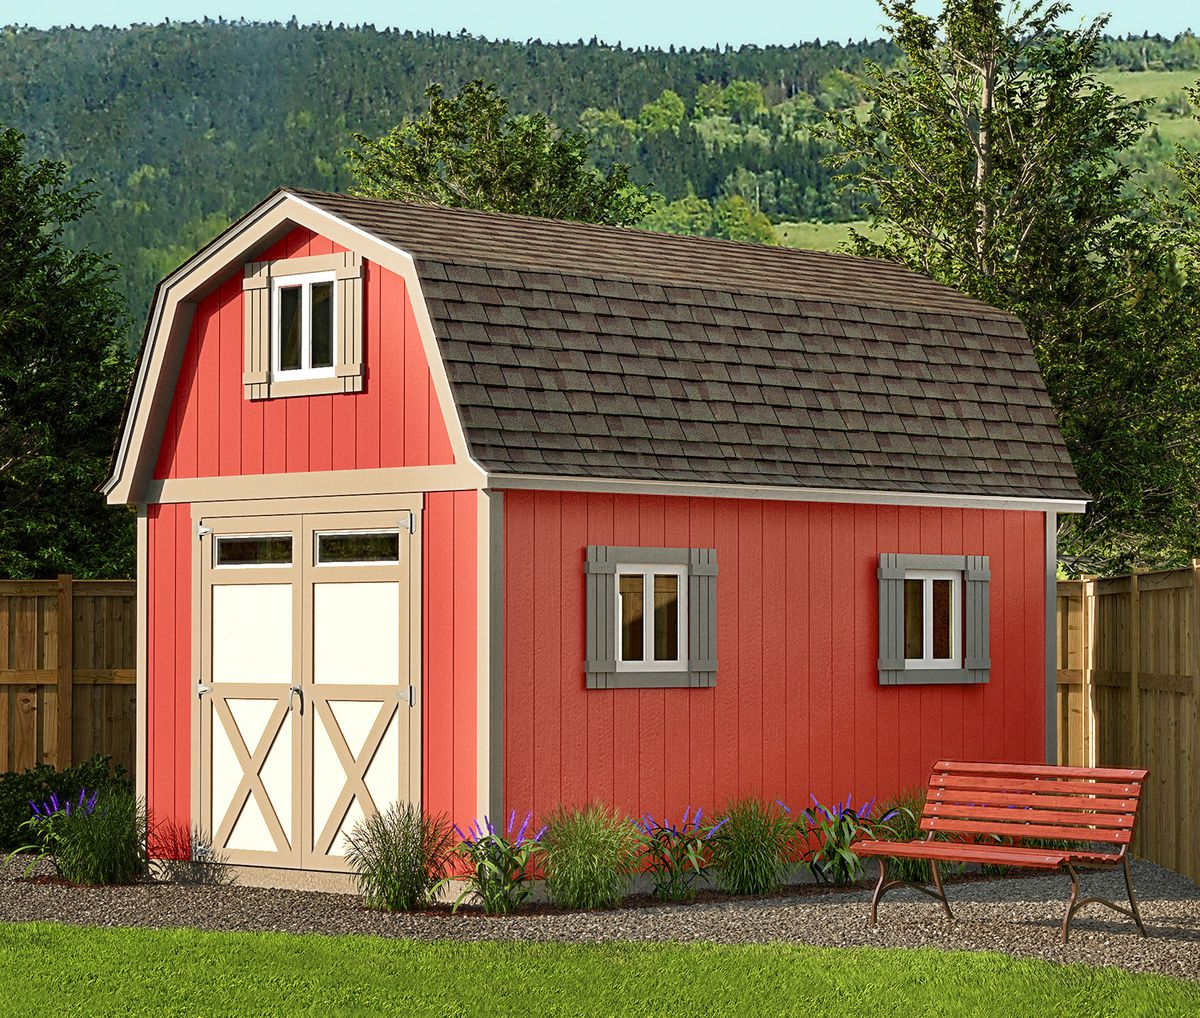 Garden Shed With Gambrel Roof